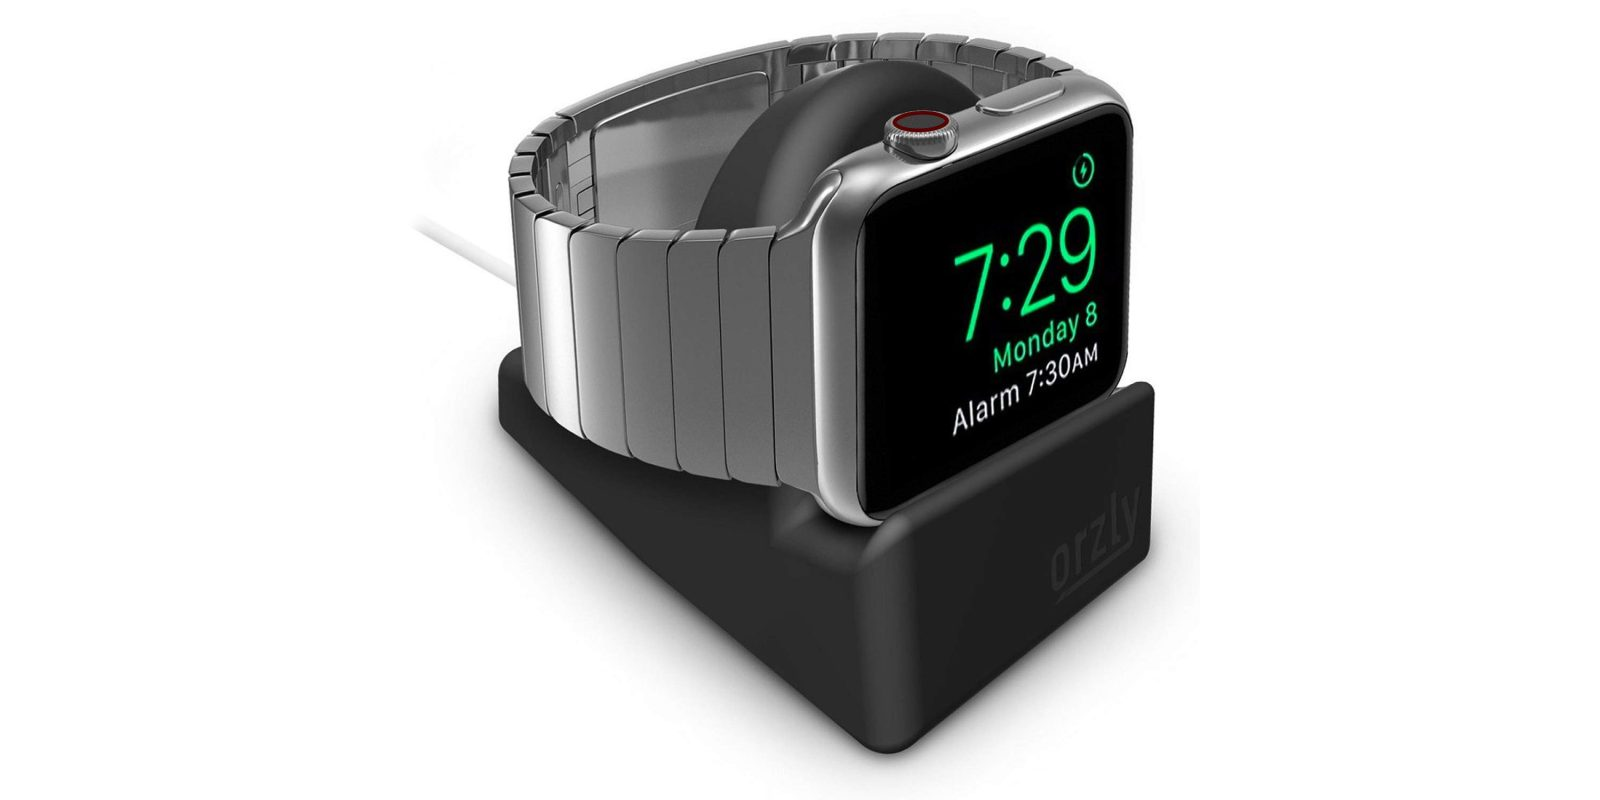 This $6 Apple Watch Dock is wonderfully affordable at 50% off